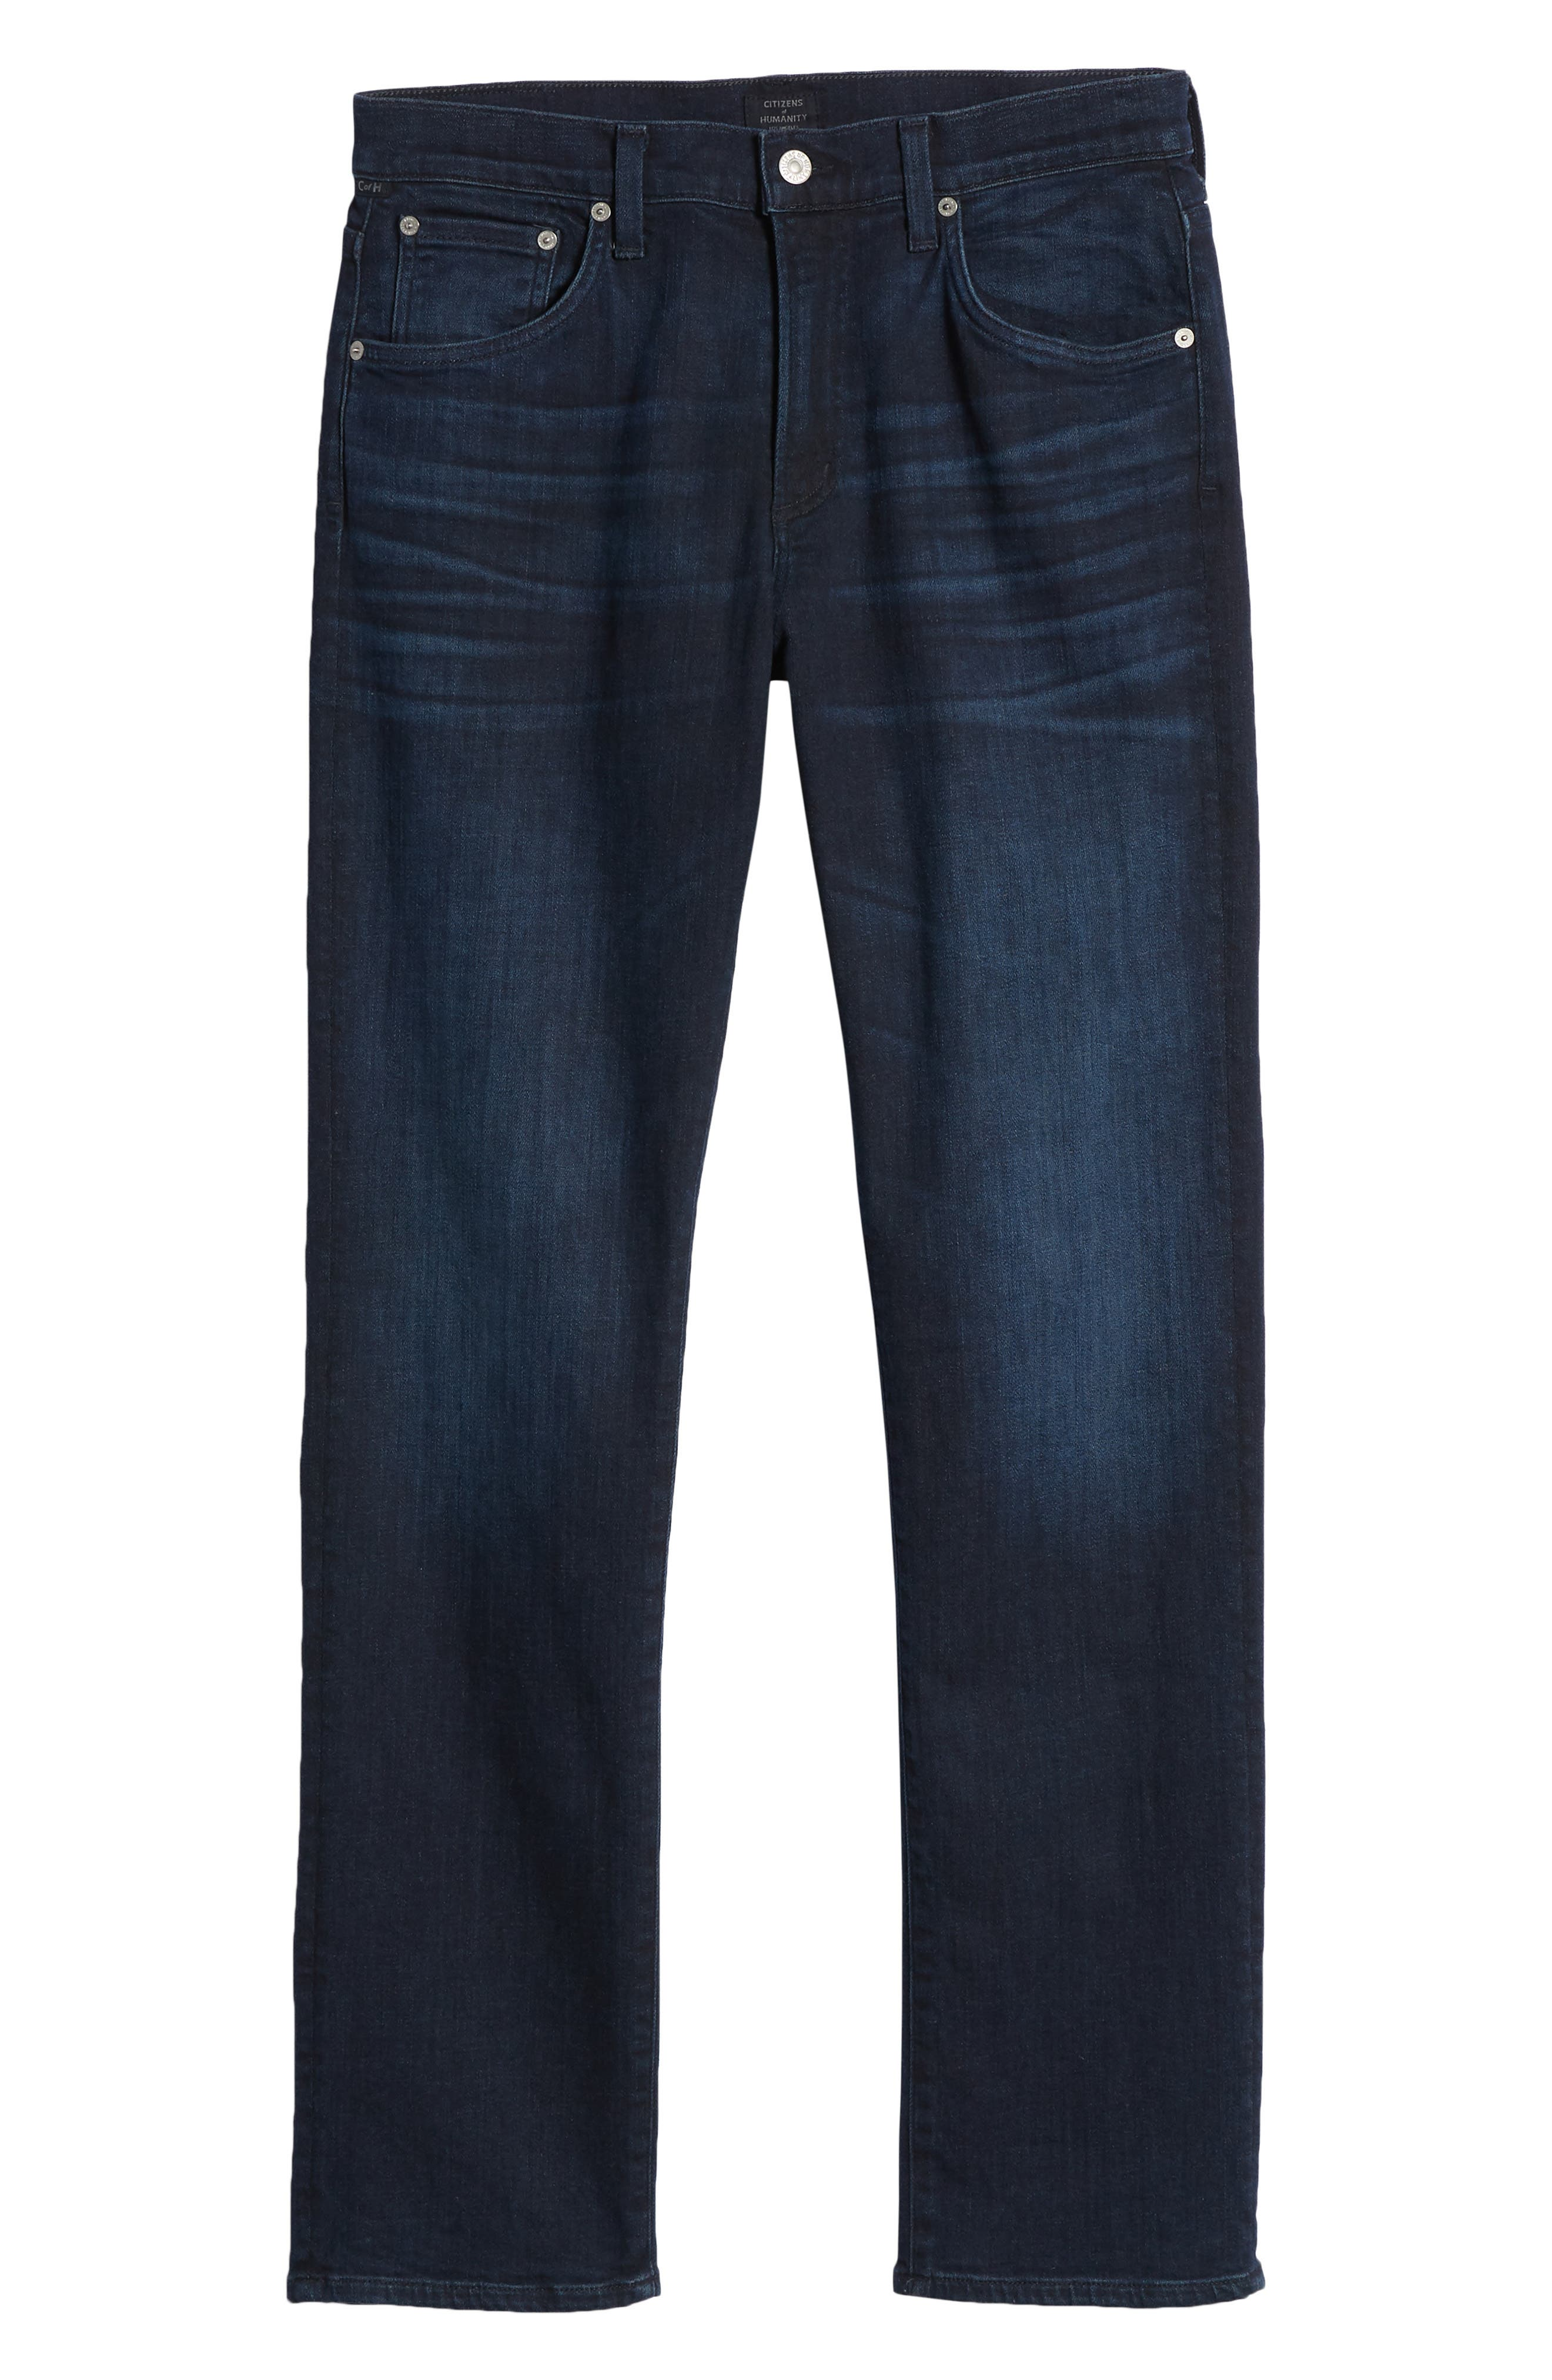 Gage Slim Straight Leg Jeans,                             Alternate thumbnail 6, color,                             Geary